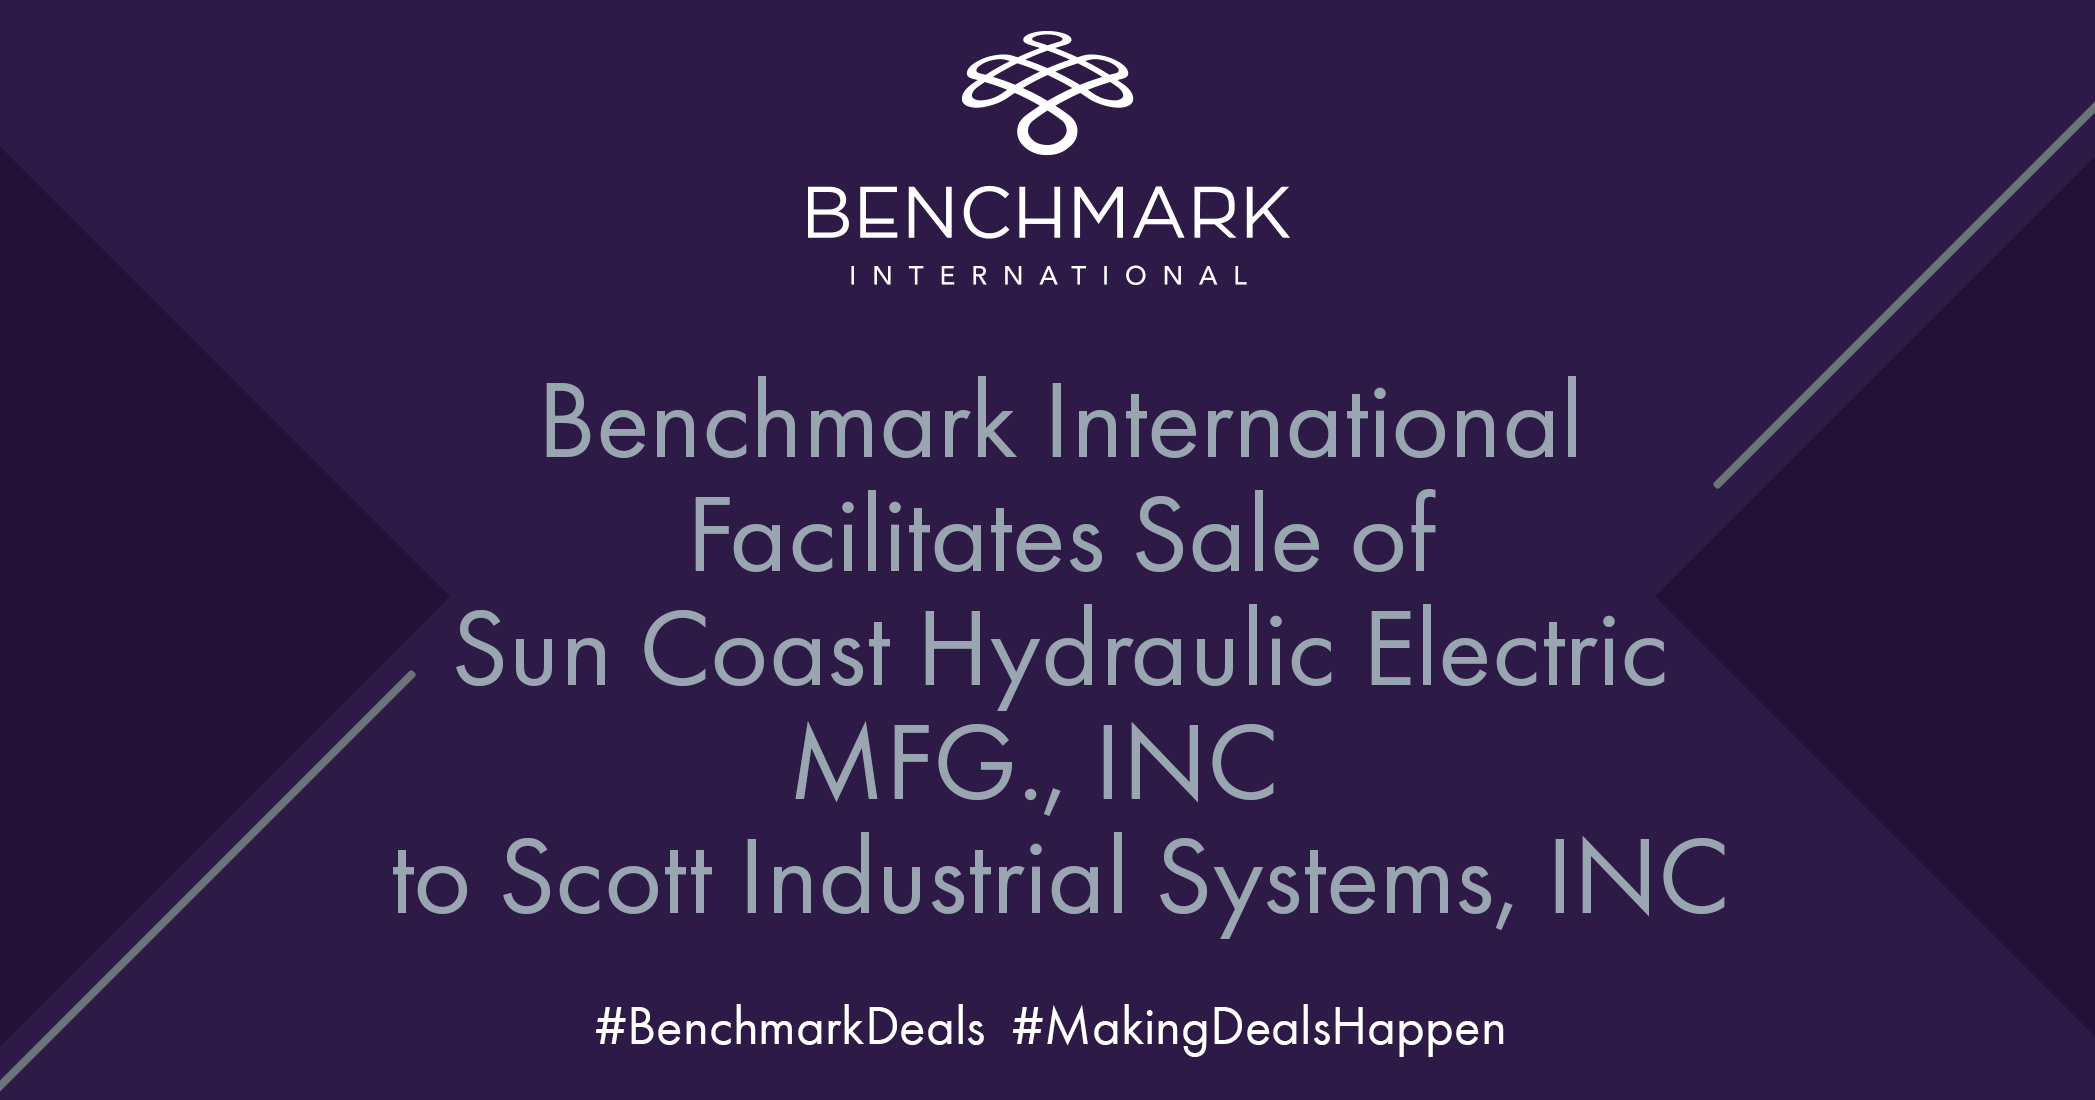 Benchmark International, has successfully facilitated the sale of Sun Coast Hydraulic Electric MFG.,Inc. to Scott Industrial Systems, Inc.